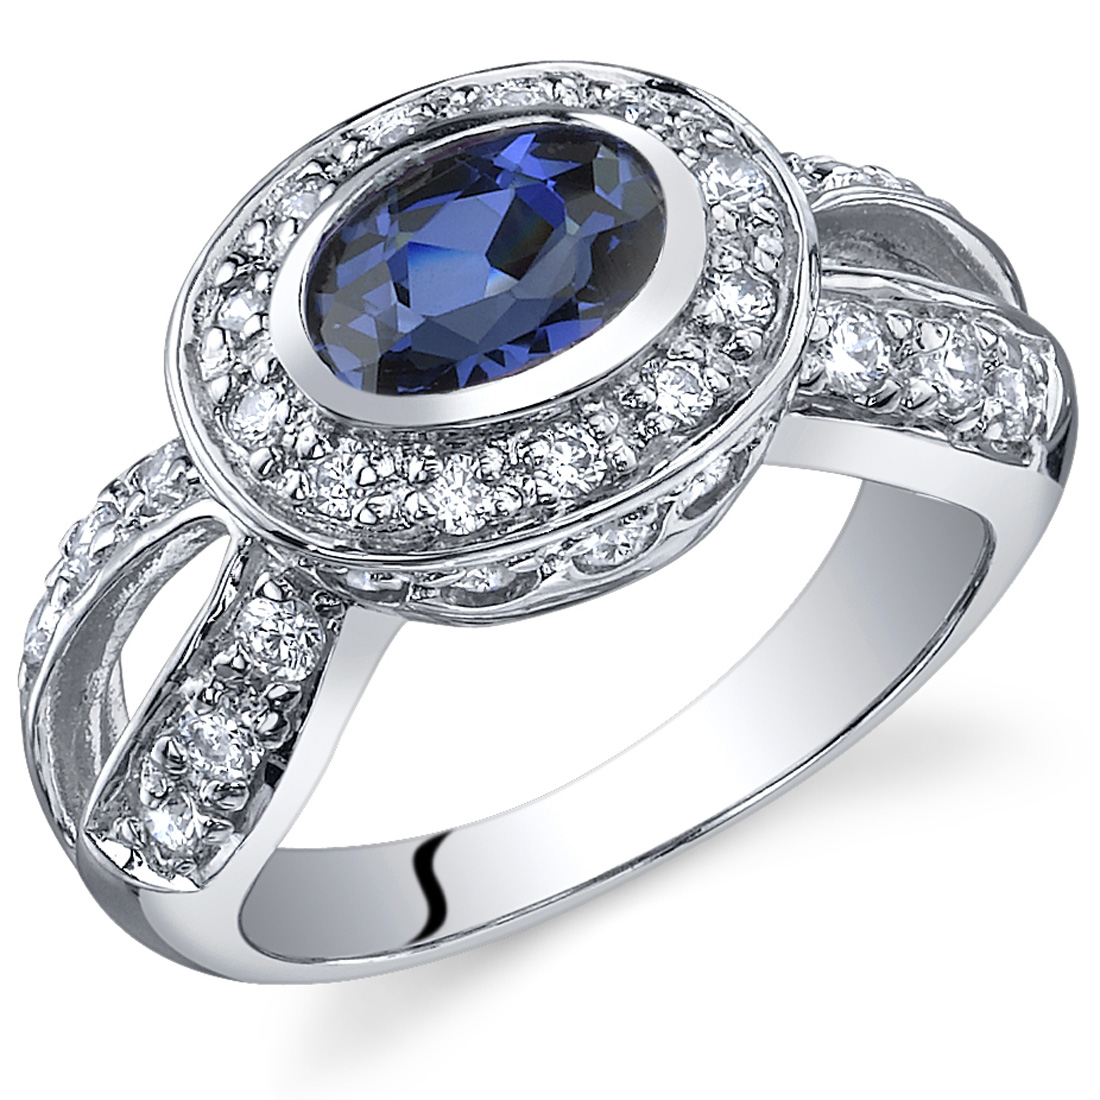 Peora 1.00 Ct Created Blue Sapphire Engagement Ring in Rhodium-Plated Sterling Silver